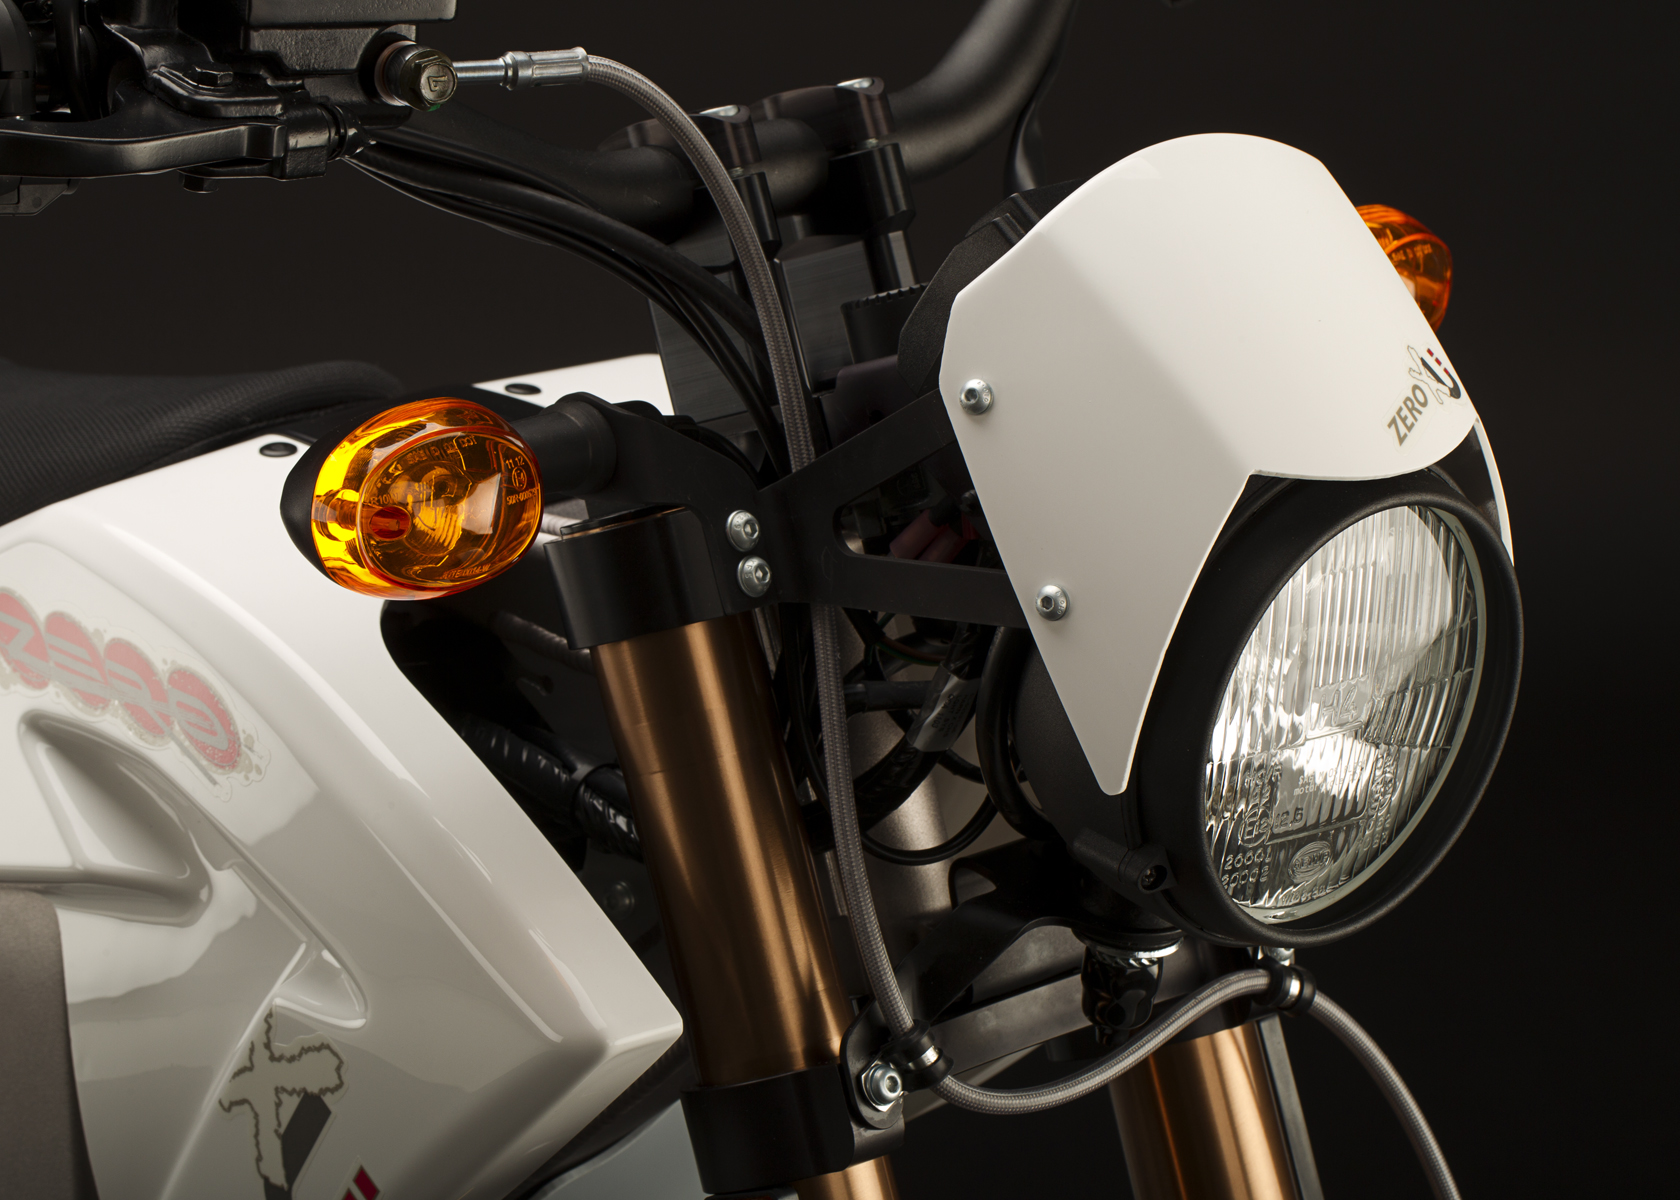 2011 Zero XU Electric Motorcycle: Headlight